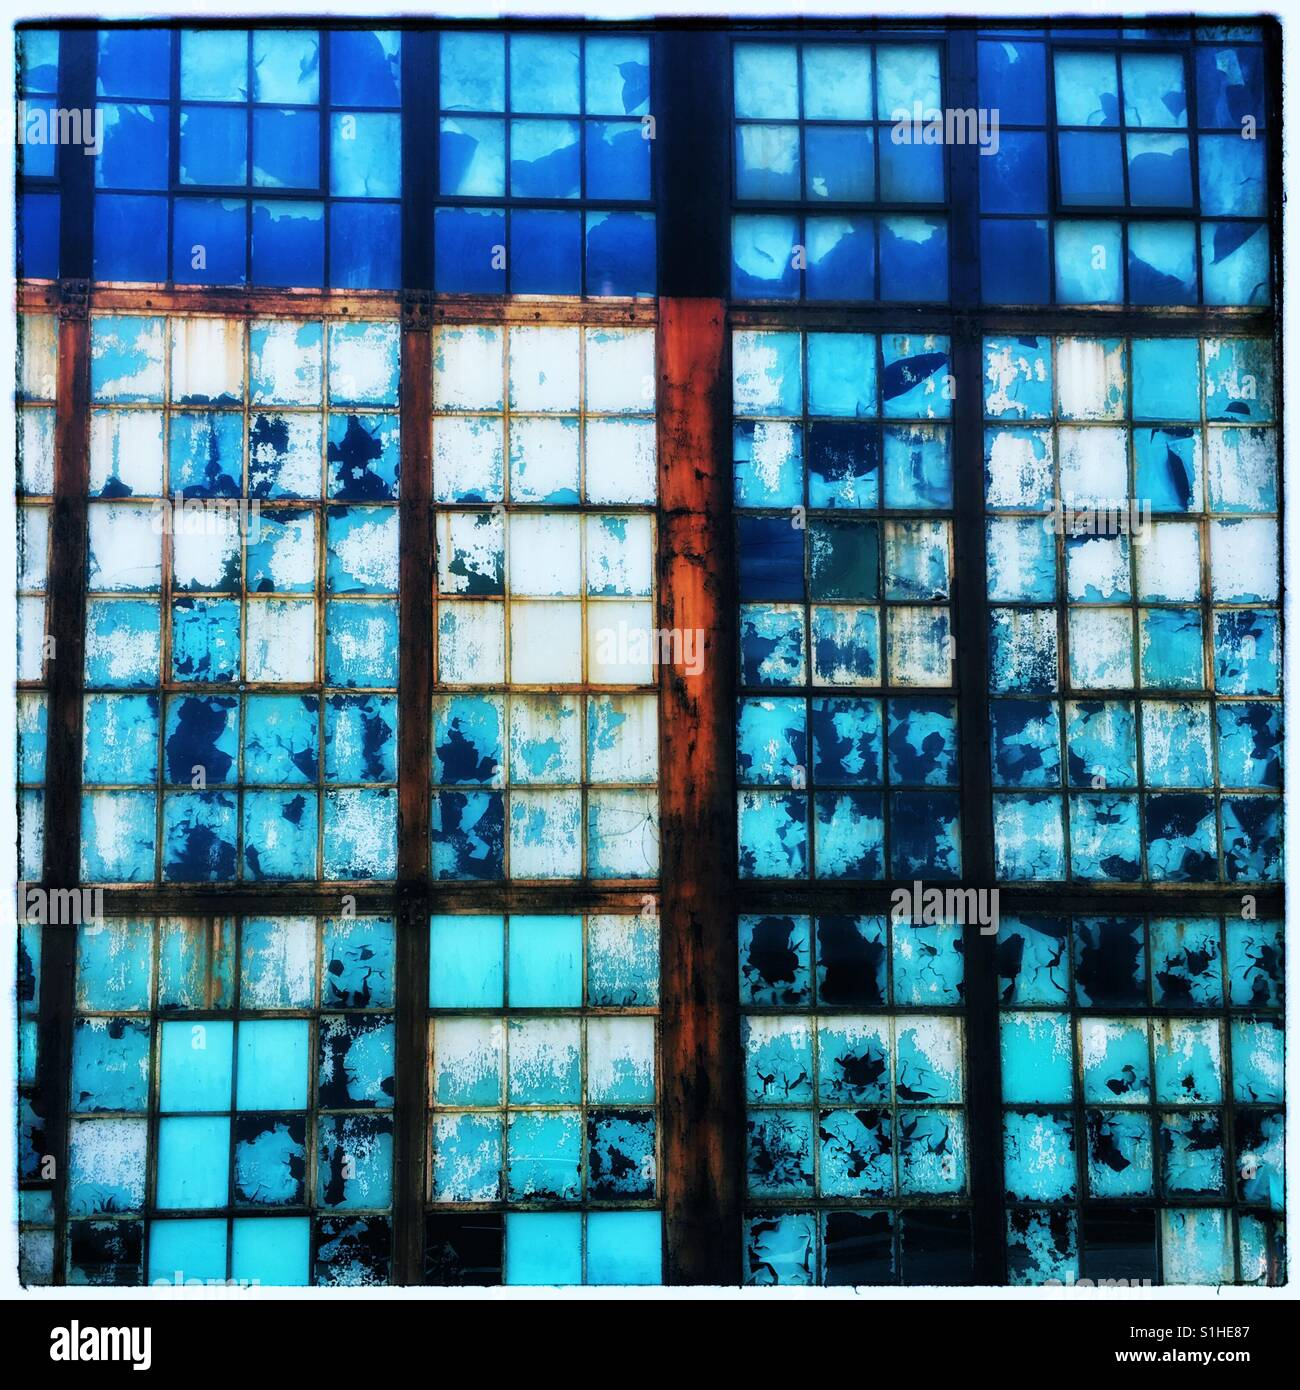 Old window panes painted blue - Stock Image